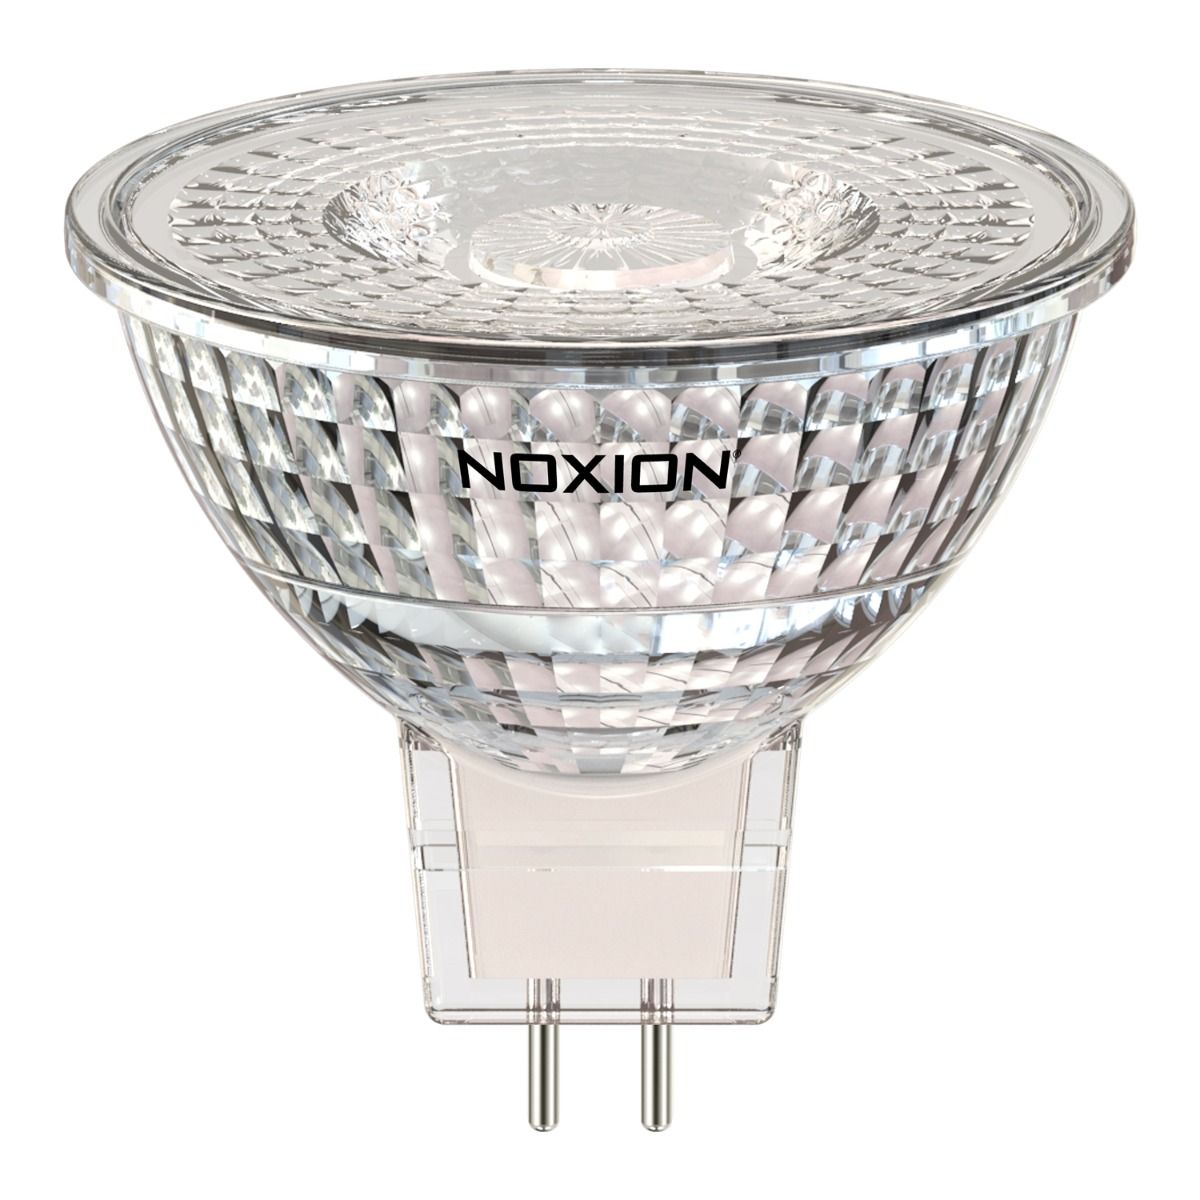 Noxion LED Spot GU5.3 5W 827 60D 470lm | Dimmable - Replacer for 35W